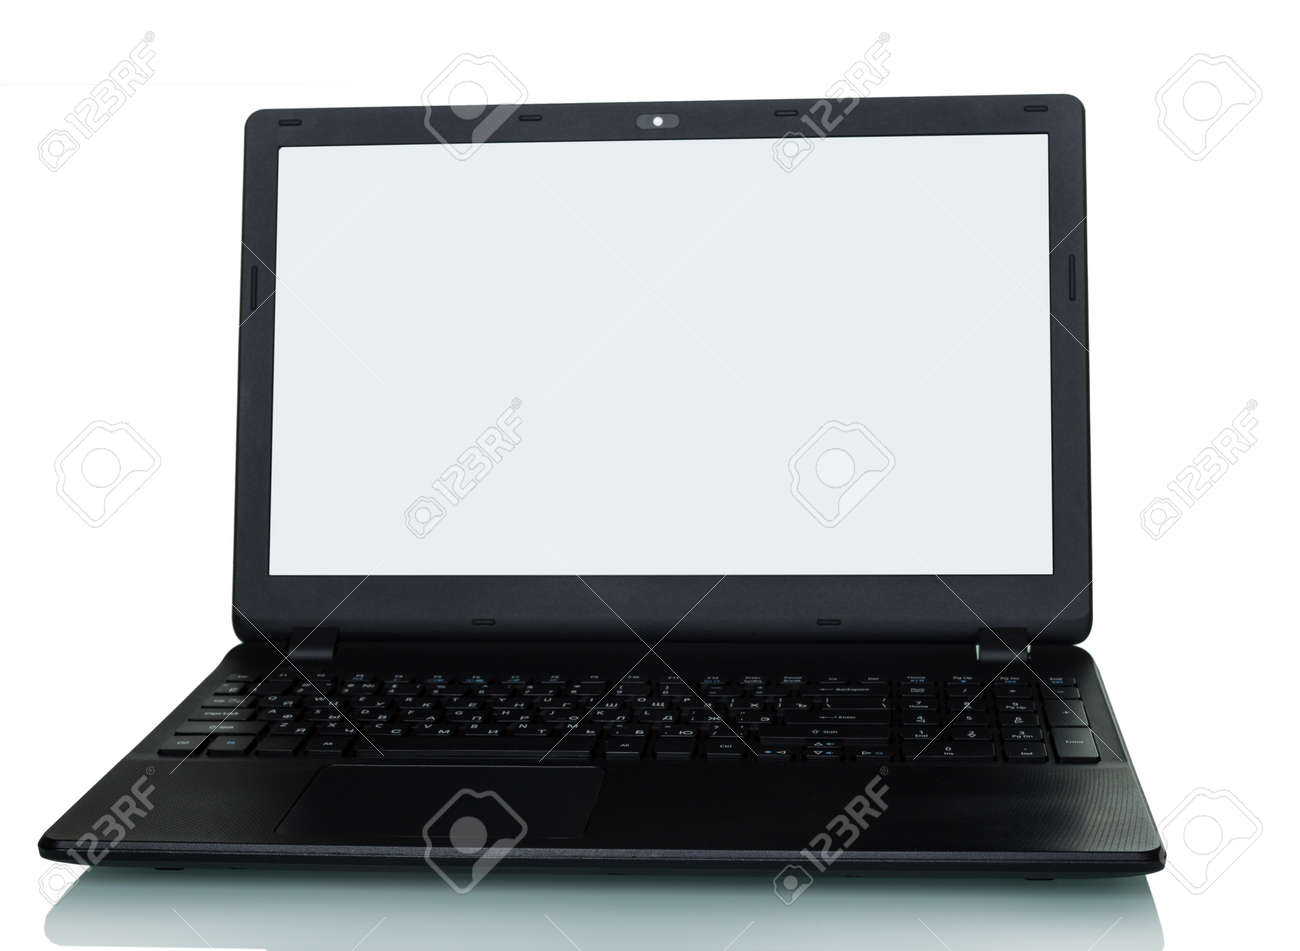 Modern laptop computer isolated on white background - 141941324